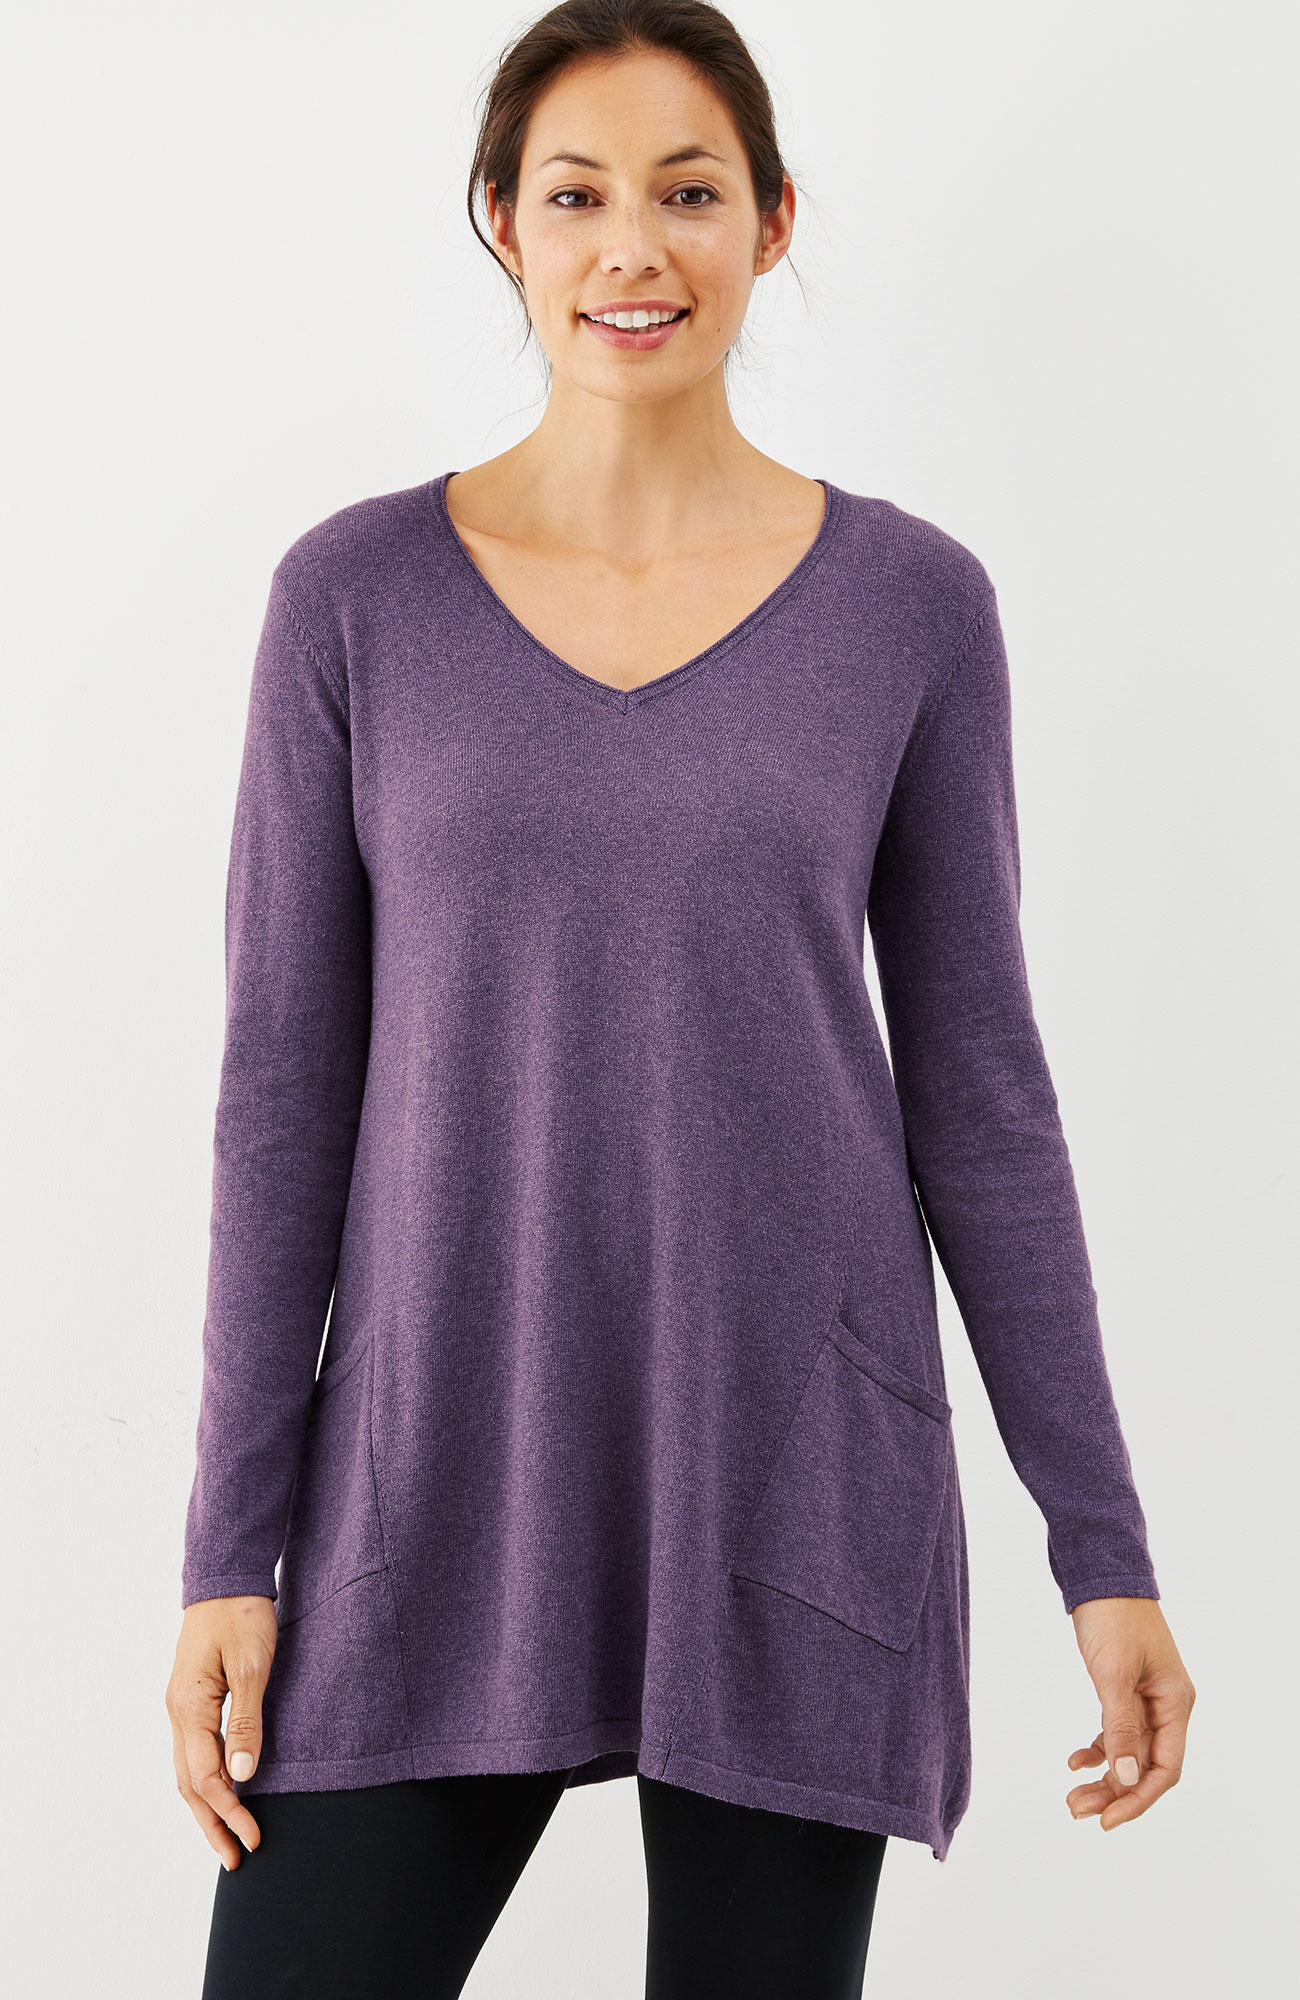 Pure Jill ultrasoft tunic sweater